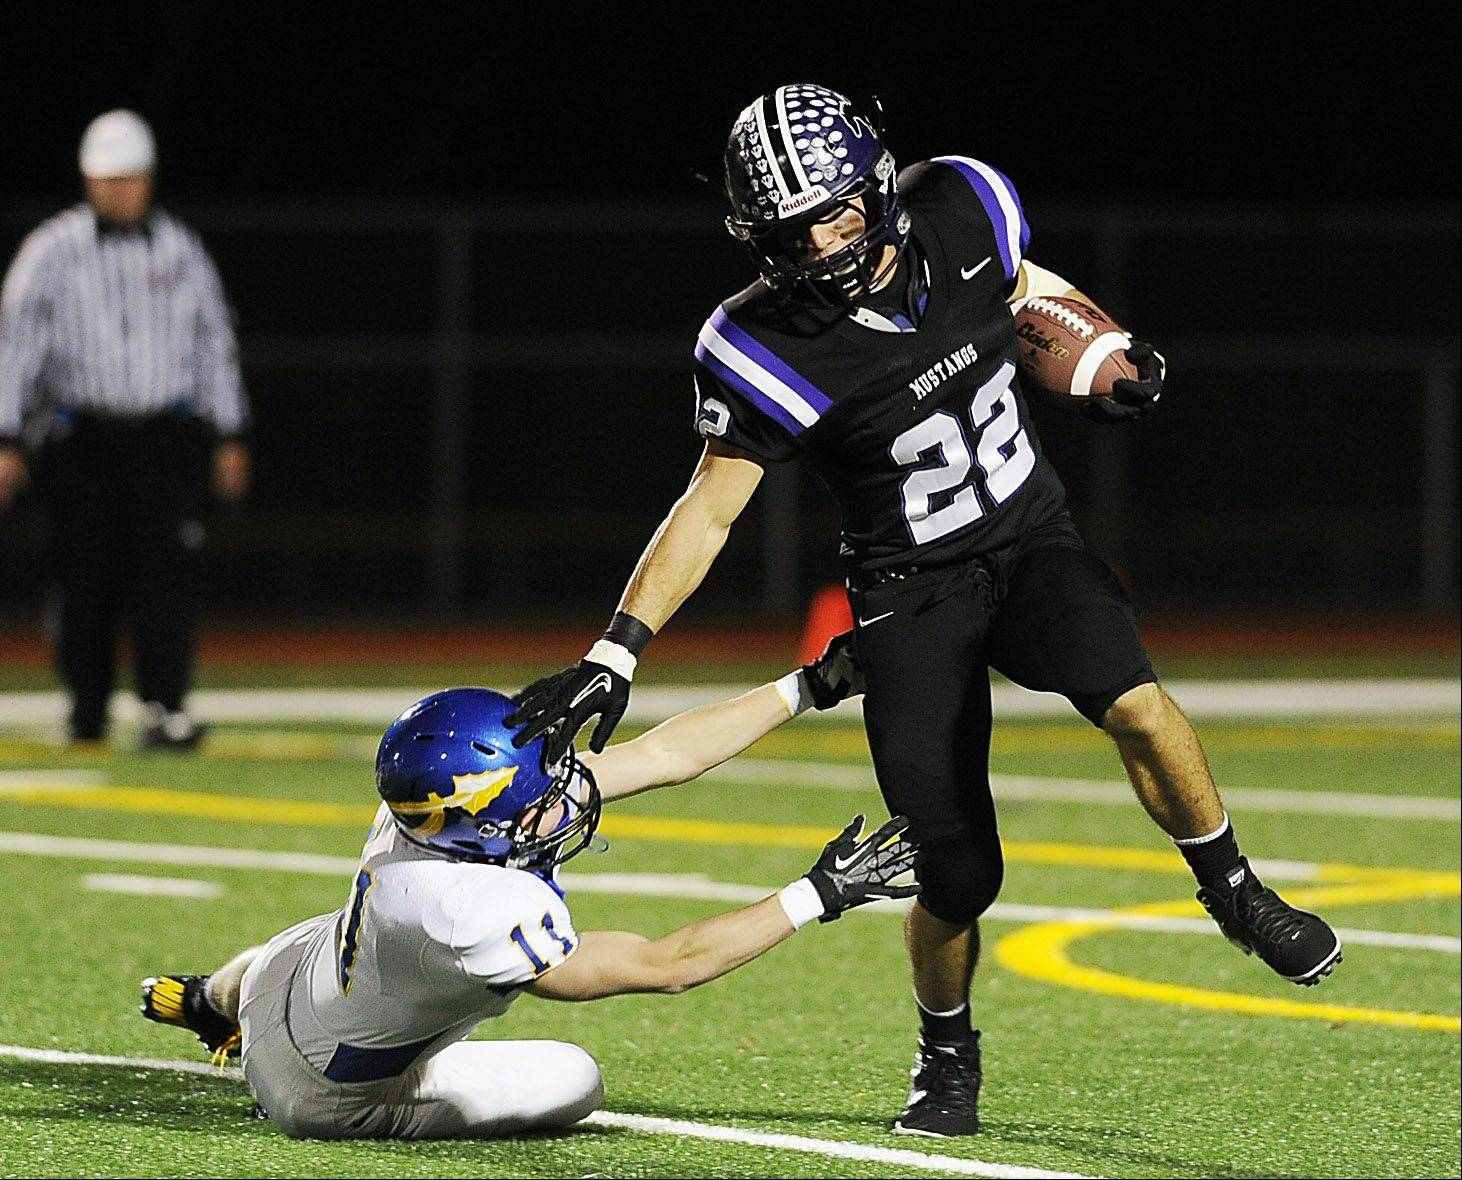 Mark Welsh/mwelsh@dailyherald.comRolling Meadow's Austin Reed fends off Lake Forest's Andy Nelson in the first quarter in the Class 6A playoff football game at Rolling Meadows High School on Friday.